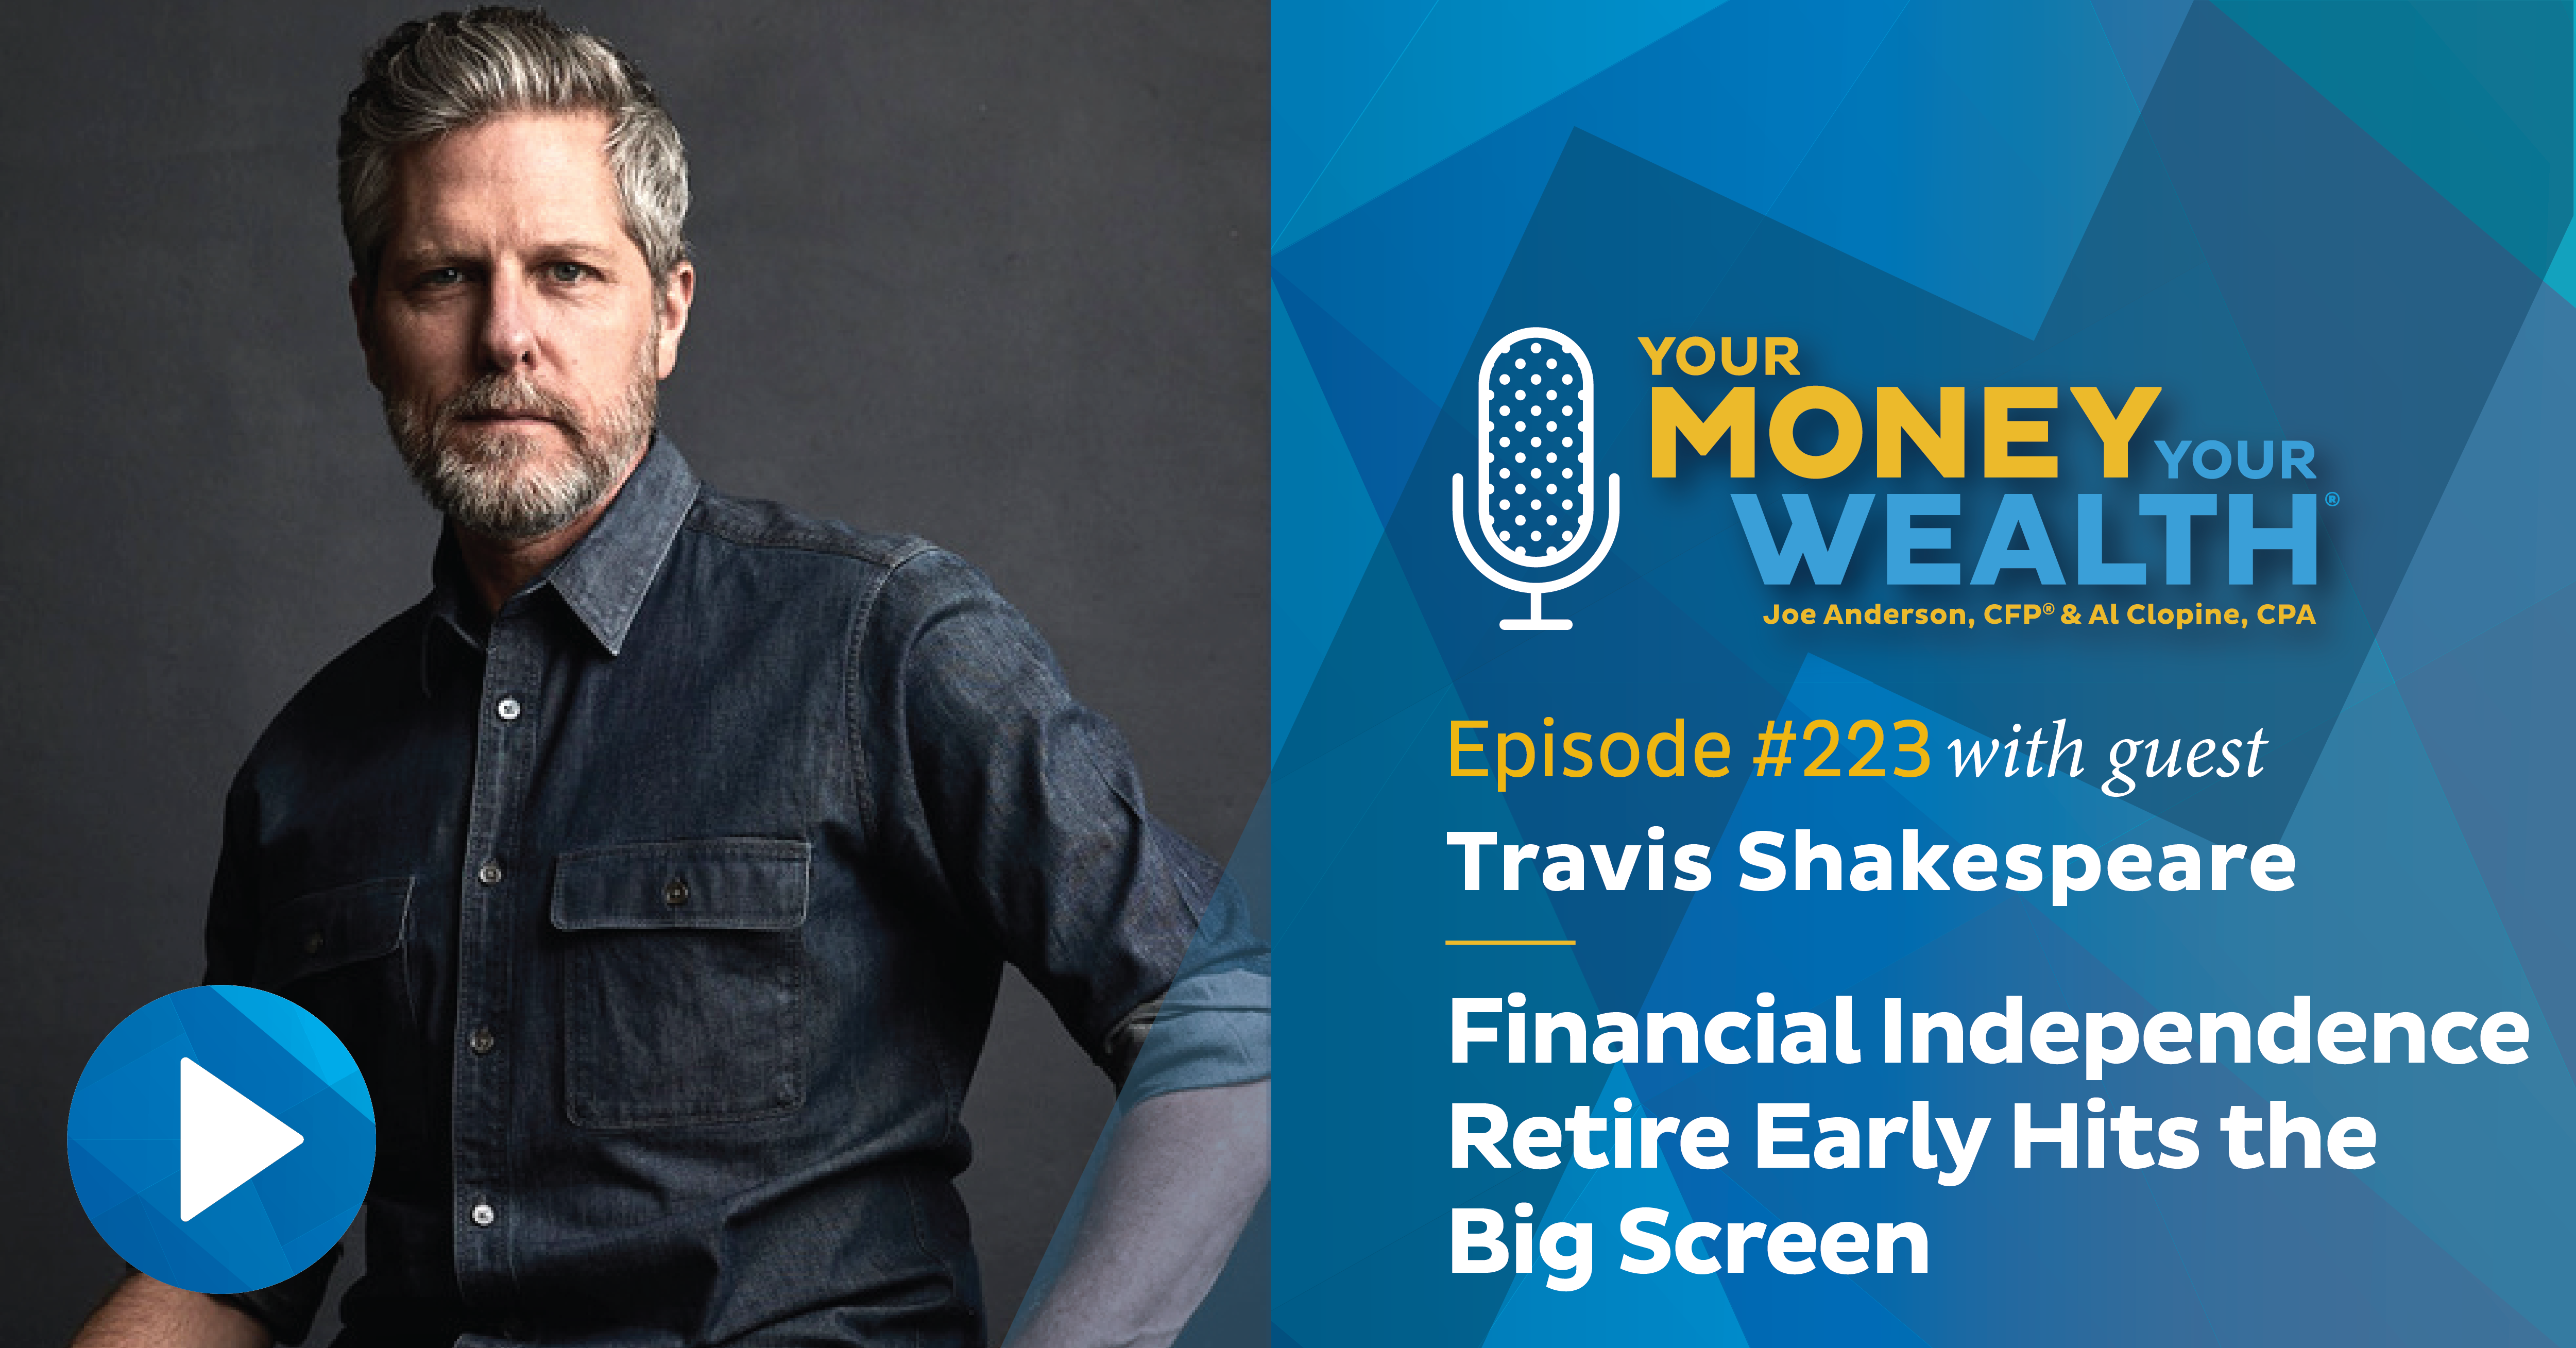 Travis Shakespeare: Financial Independence Retire Early Hits the Big Screen